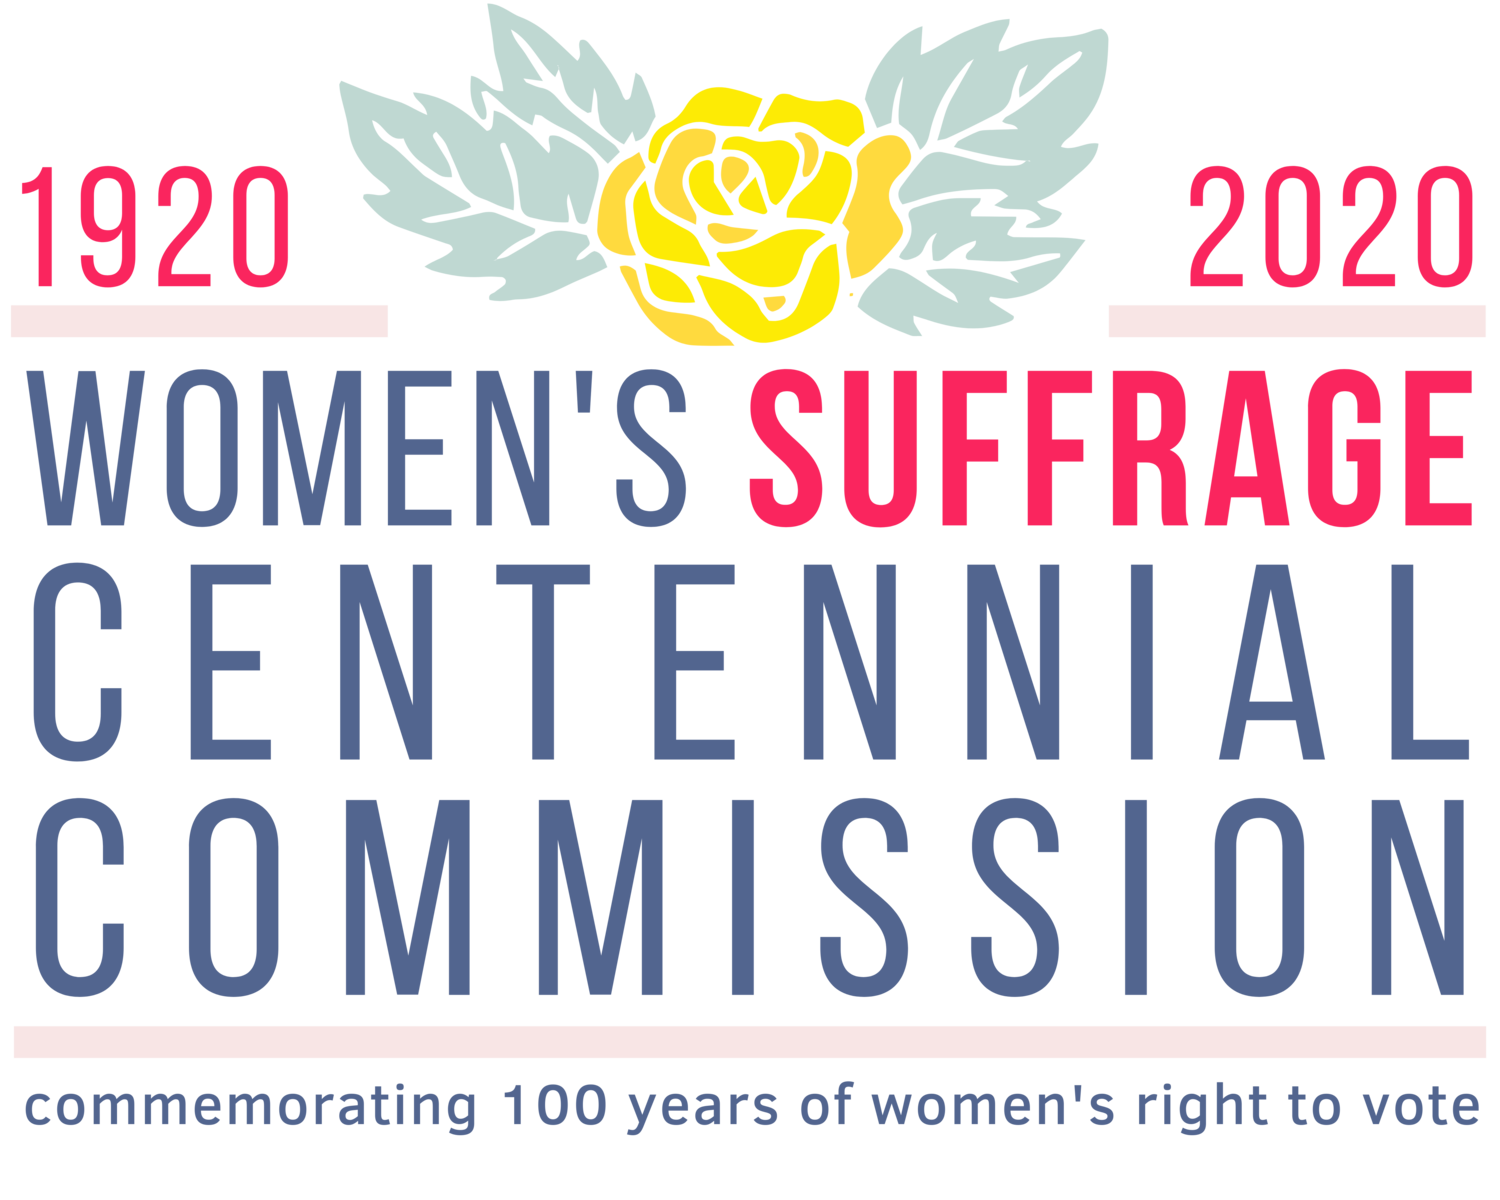 Women's Suffrage Centennial Commission